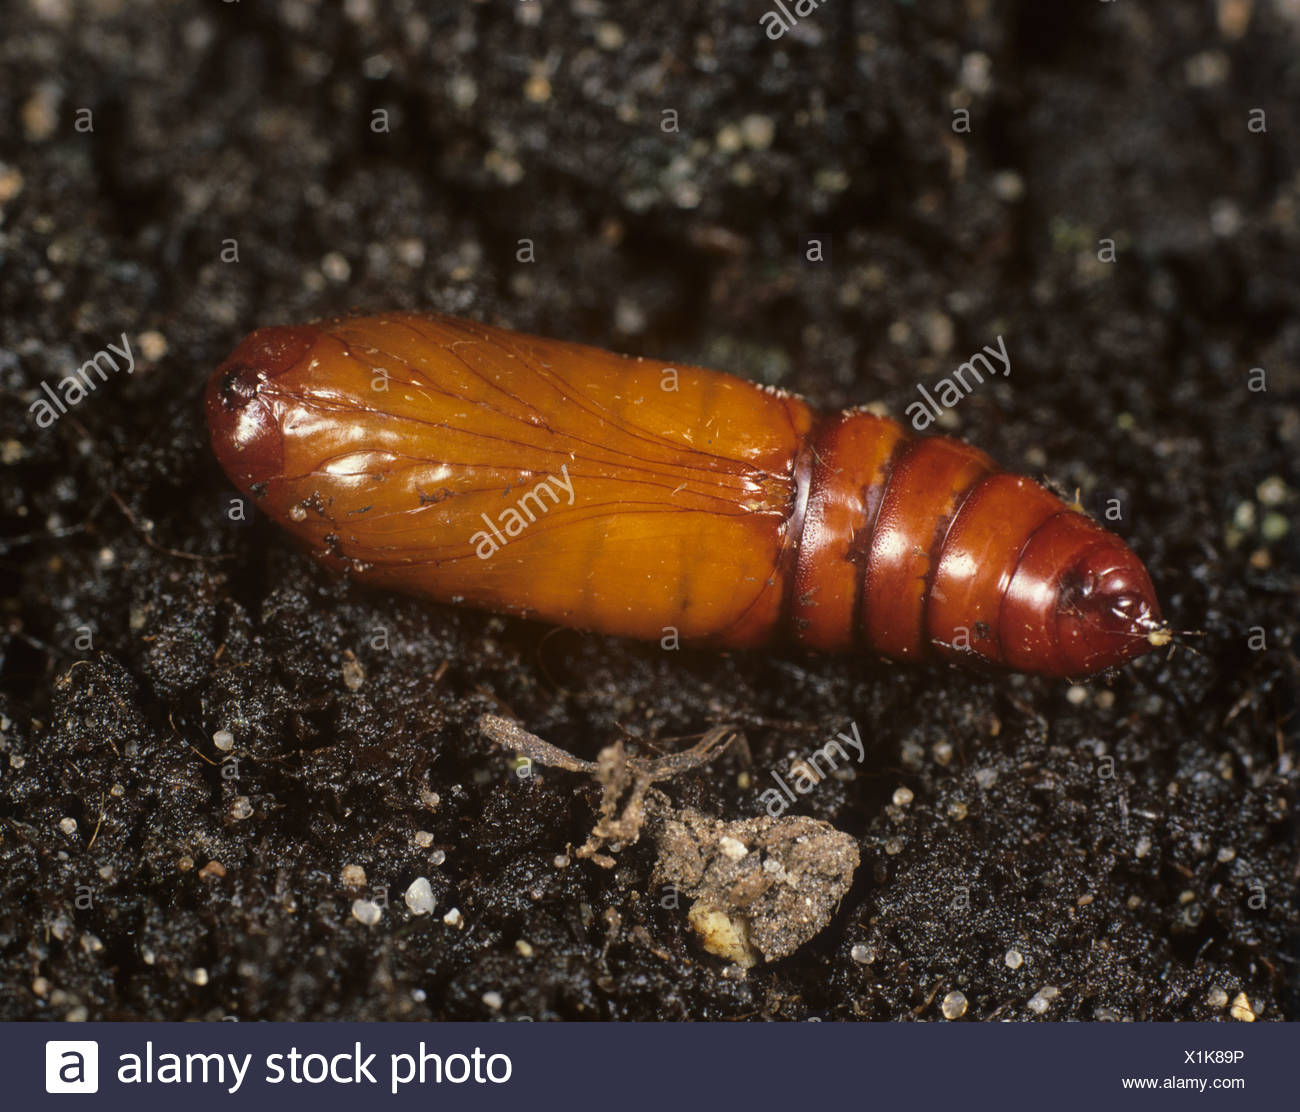 Pupa case stock photos pupa case stock images alamy for American soil